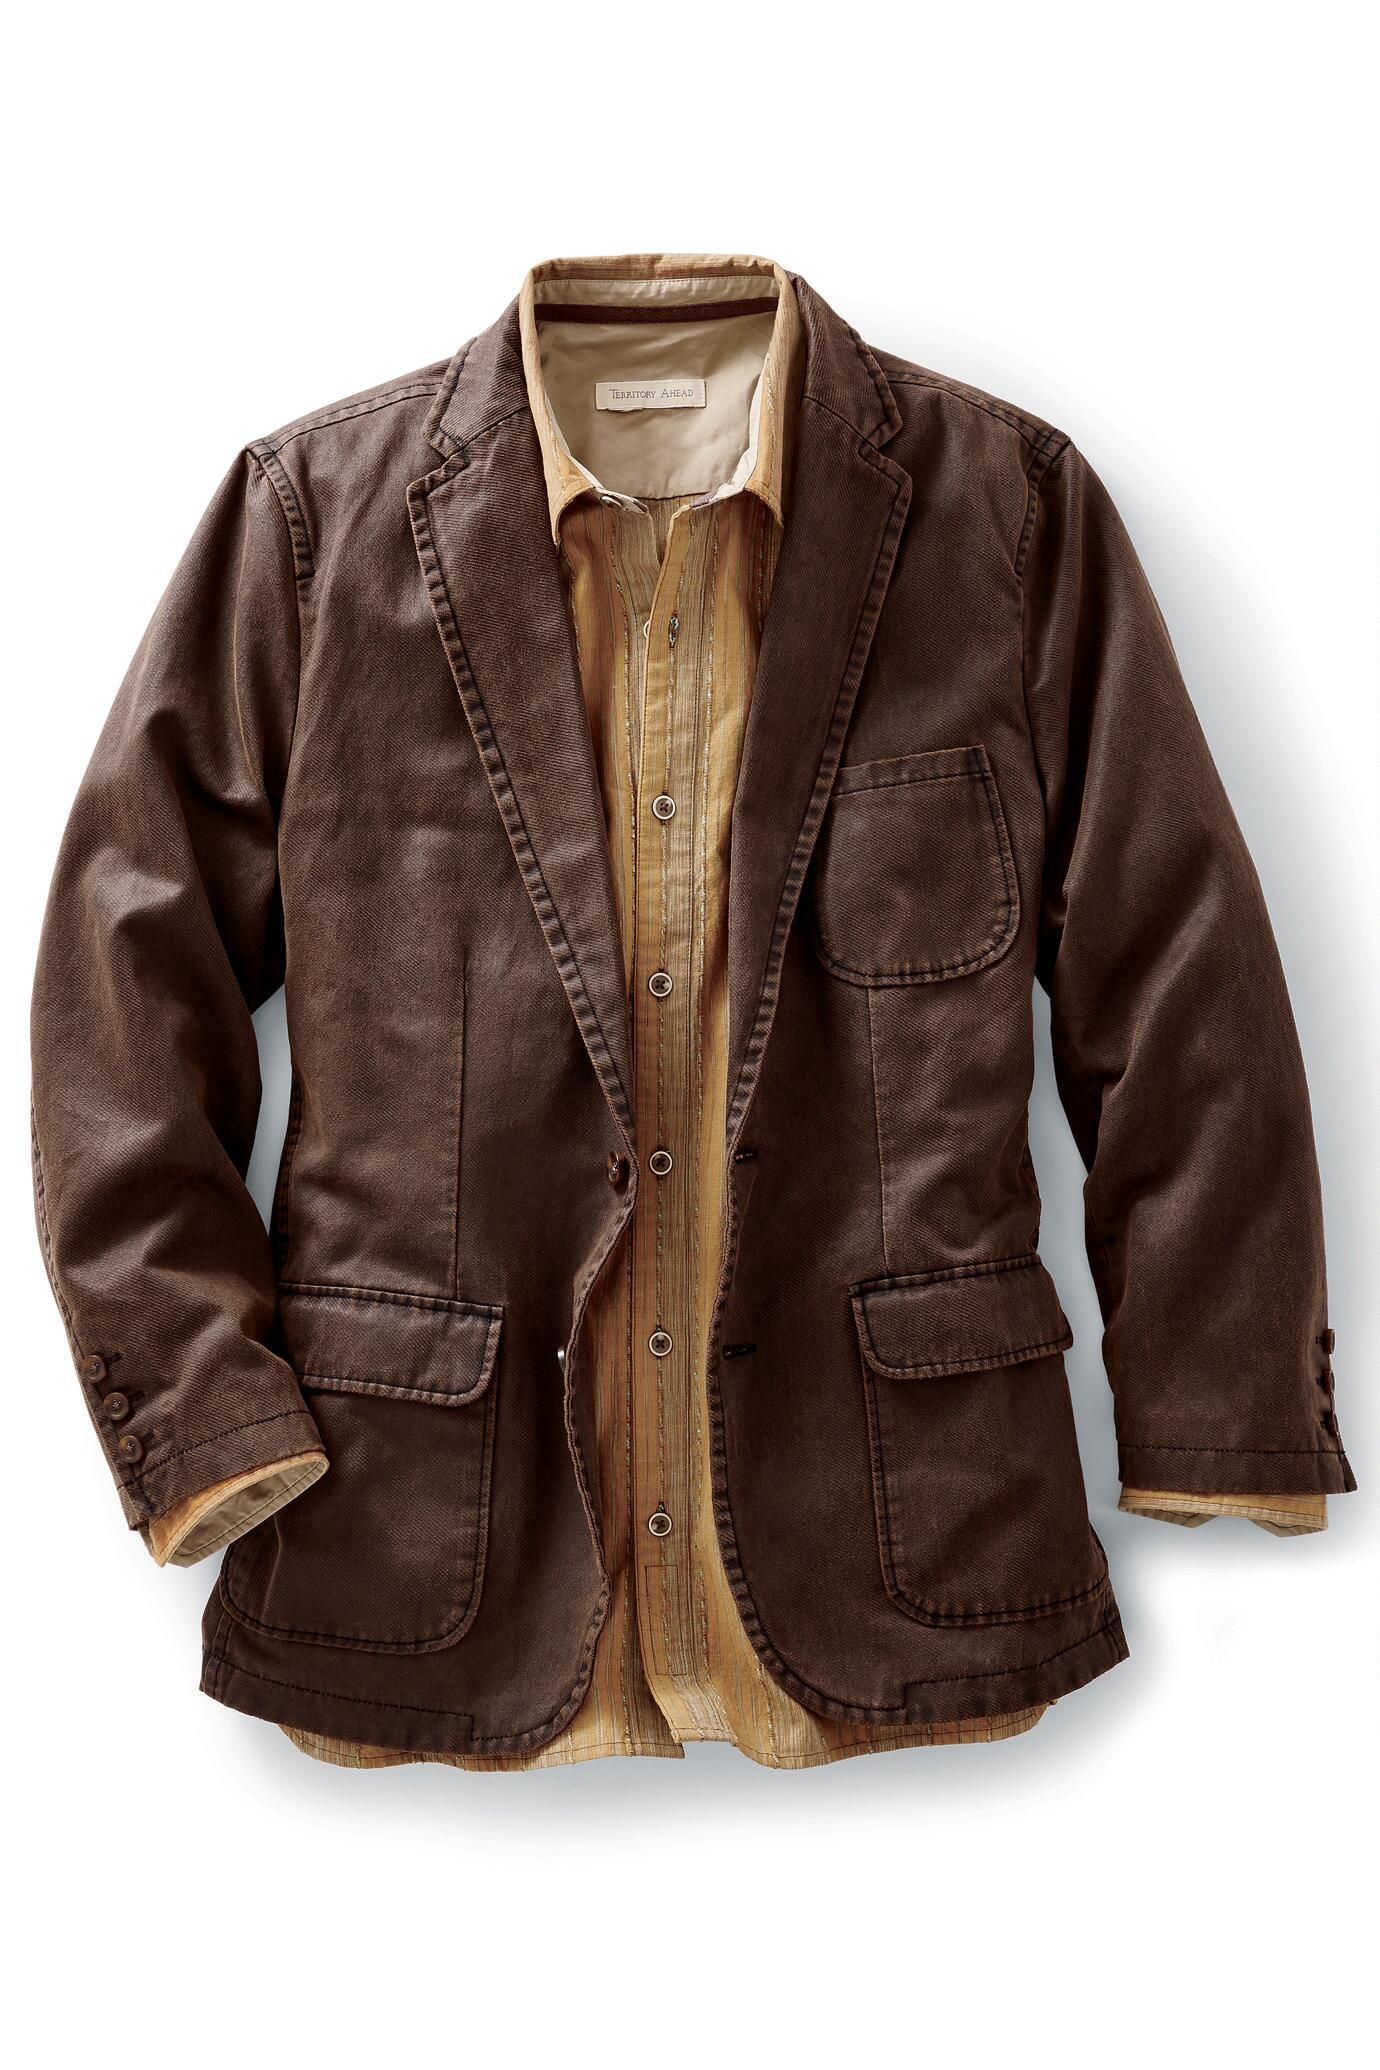 New Sausalito Sport Coat Exceptional Casual Clothing for